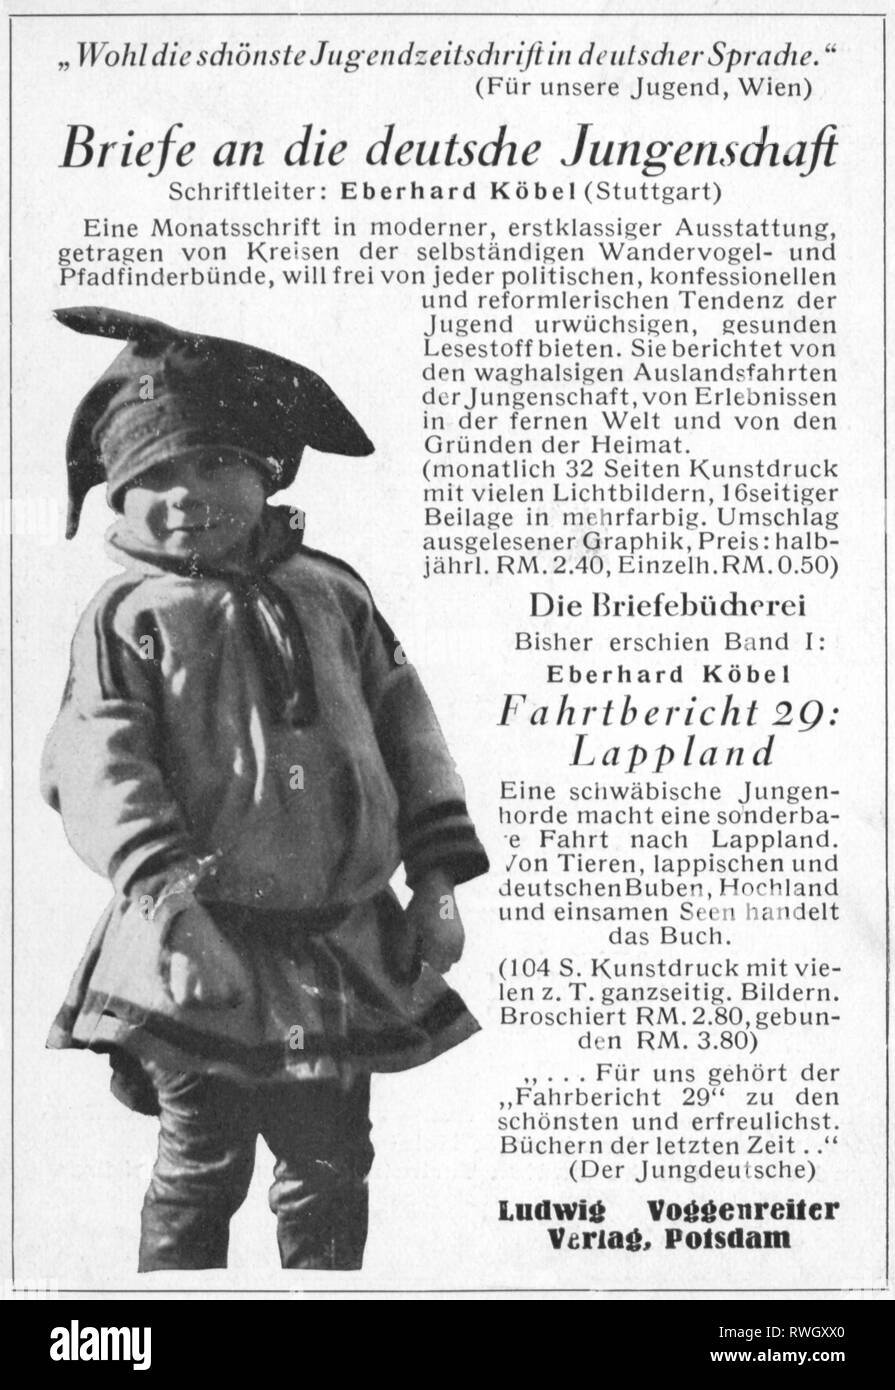 Koebel, Eberhard, 22.6.1907 - 31.8.1955, German author / writer, advertising for his magazine 'Briefe an die deutsche Jungenschaft' (Letters to the Deutsche Jungenschaft), 1928 - 1933, Additional-Rights-Clearance-Info-Not-Available - Stock Image